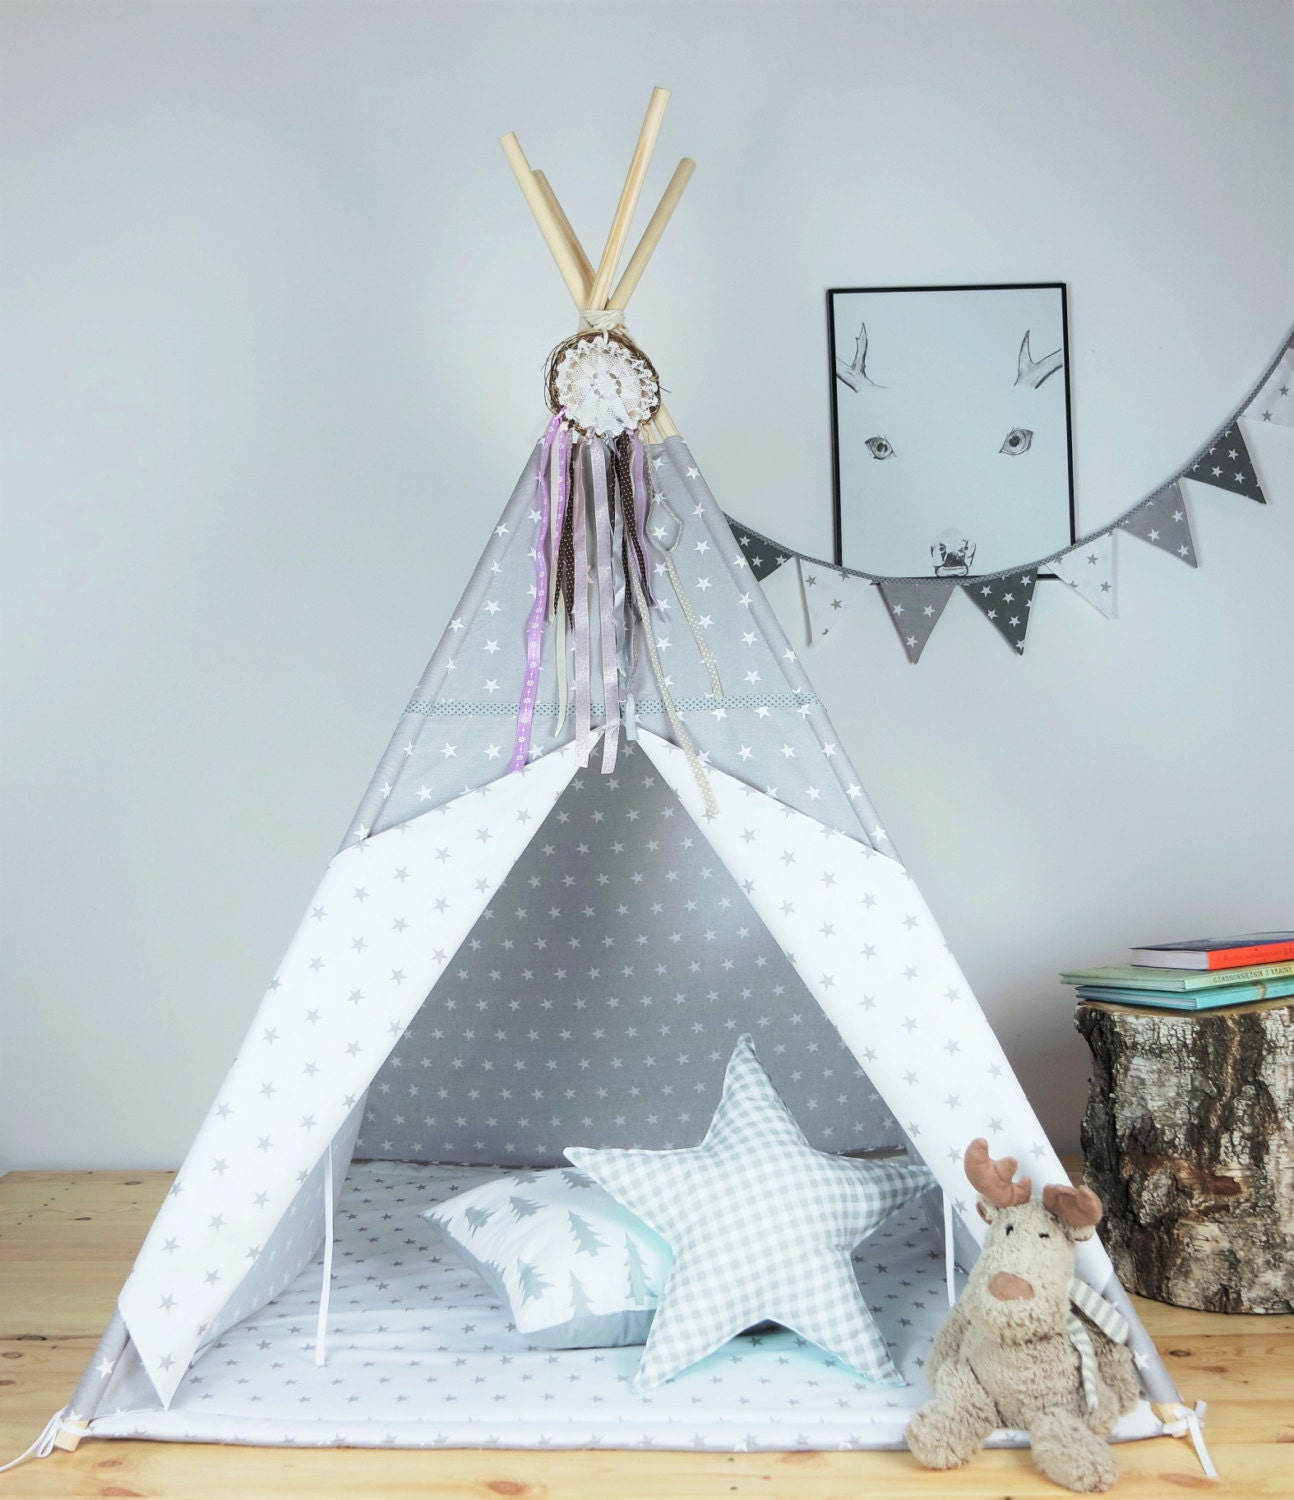 tipi pour enfants playtent tipi zelt wigwam tipis par minukids. Black Bedroom Furniture Sets. Home Design Ideas